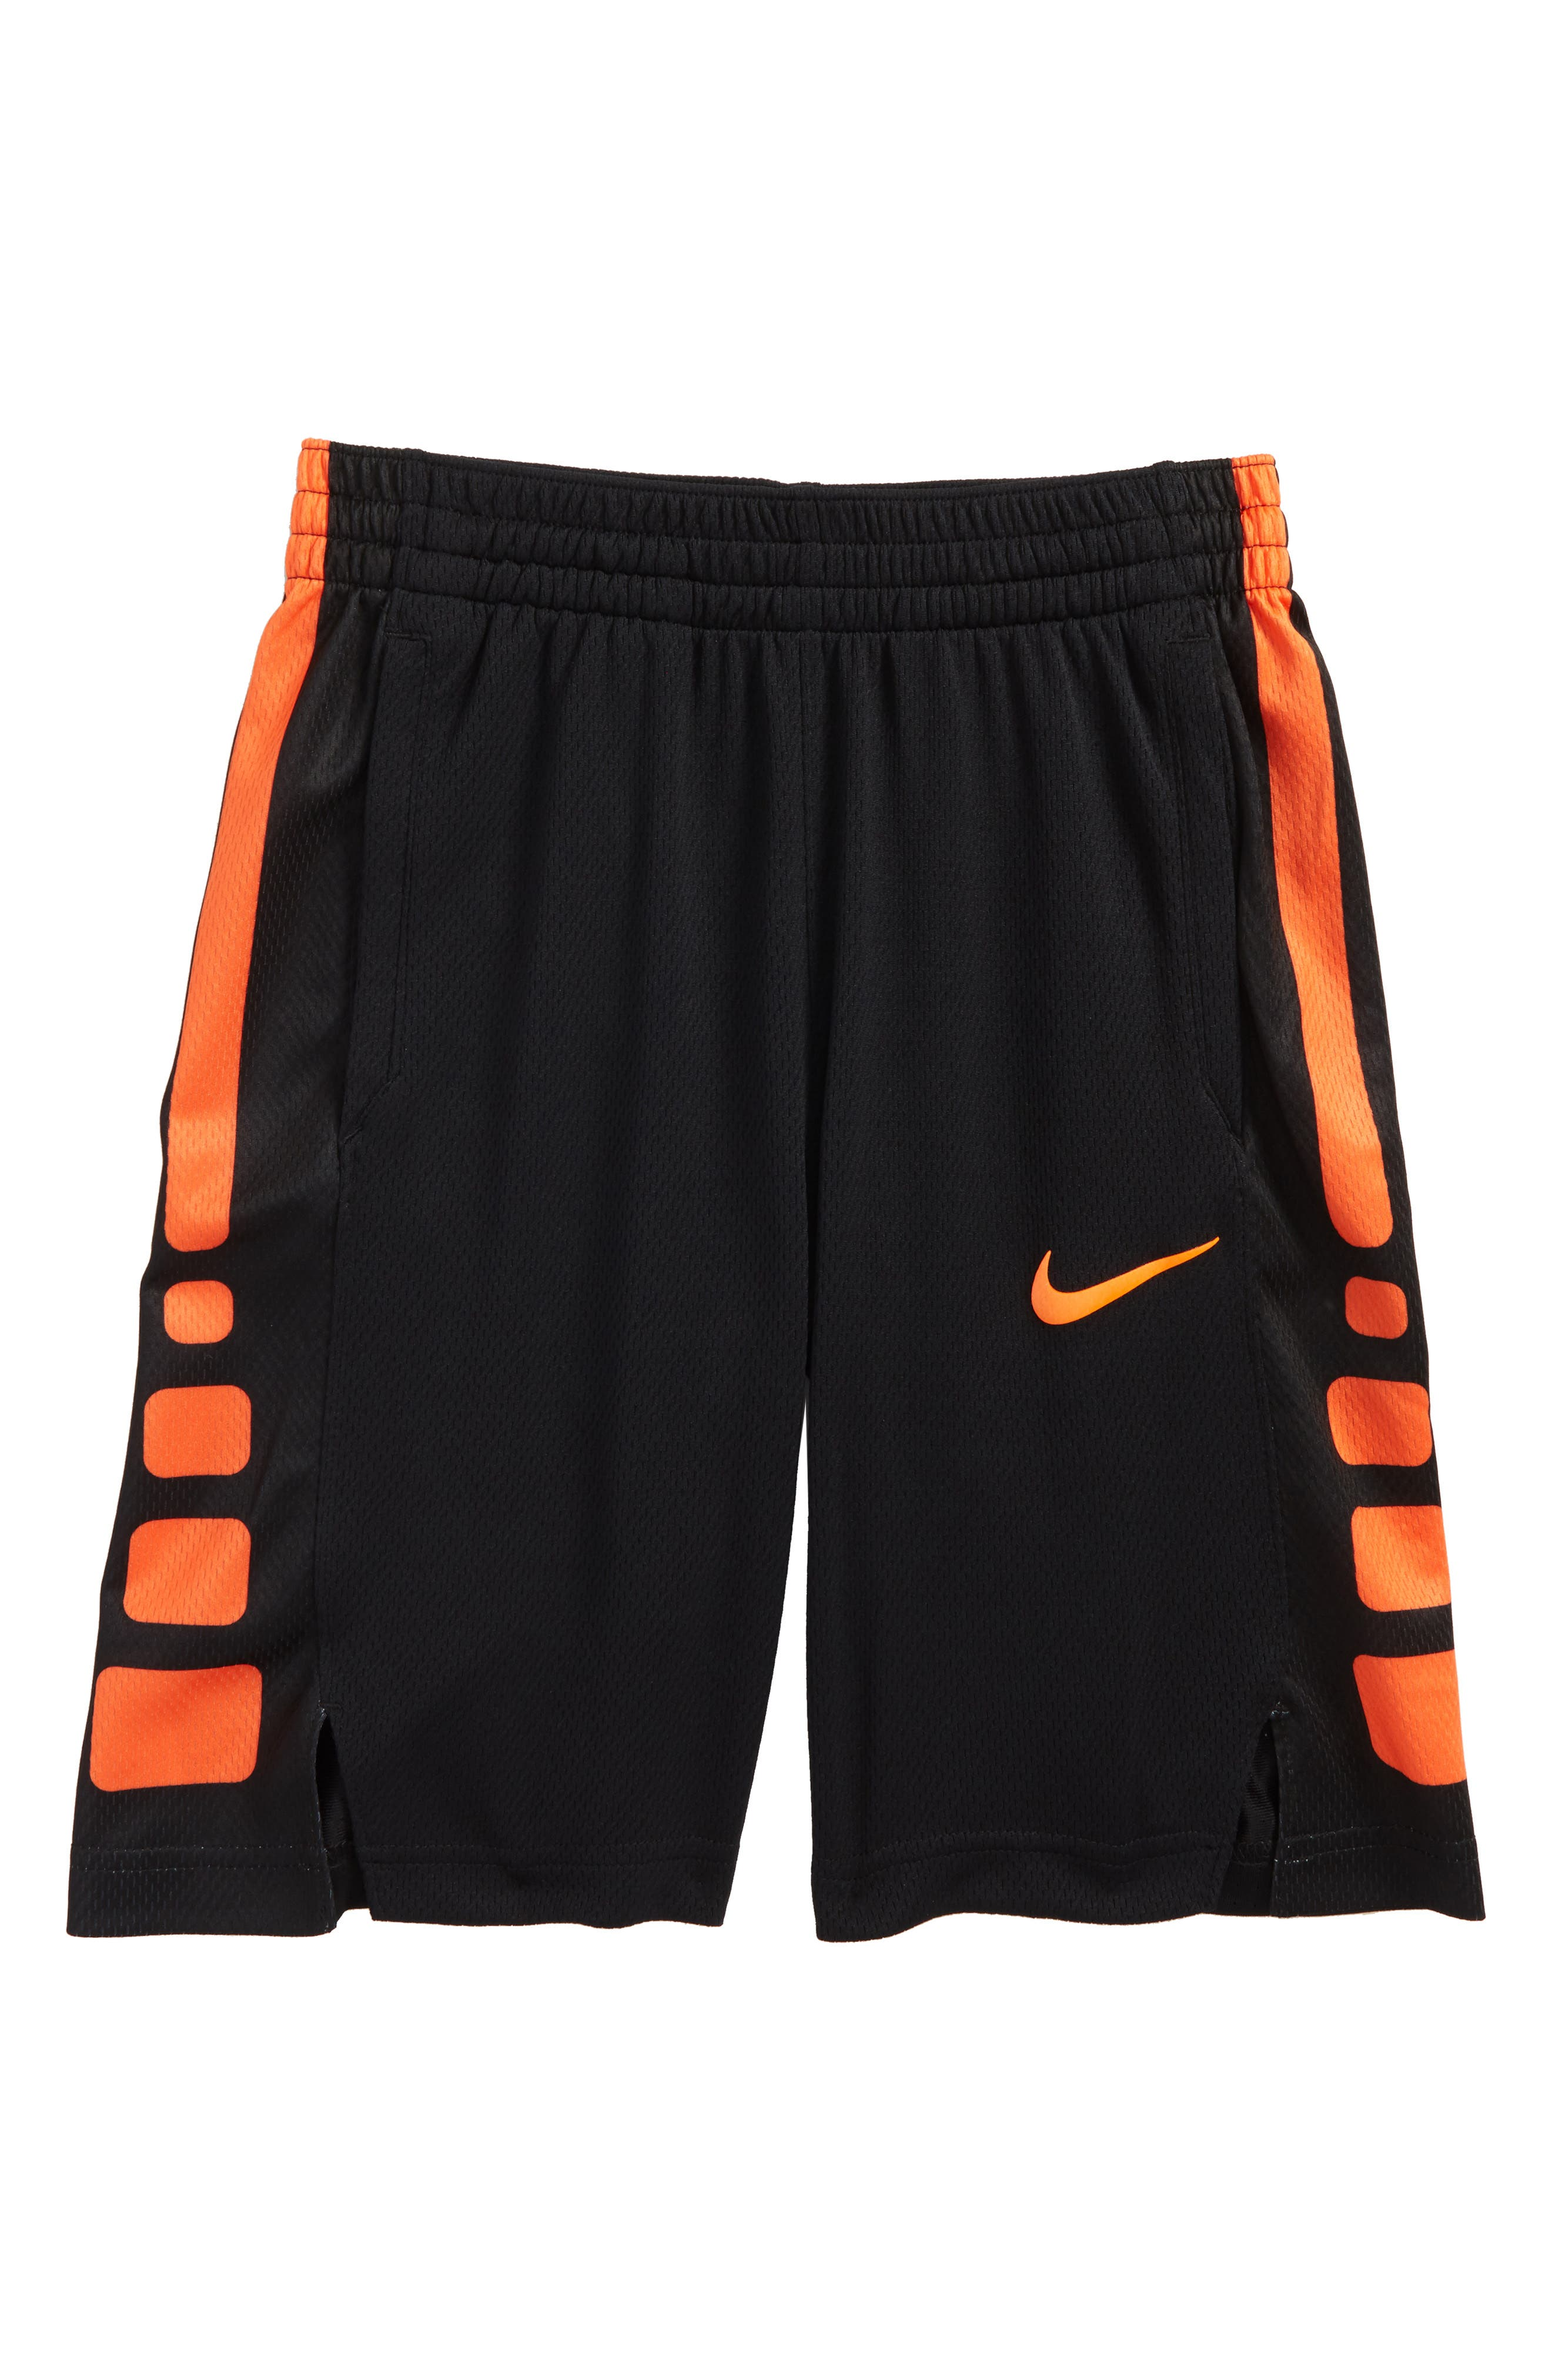 Dry Elite Basketball Shorts,                             Main thumbnail 27, color,